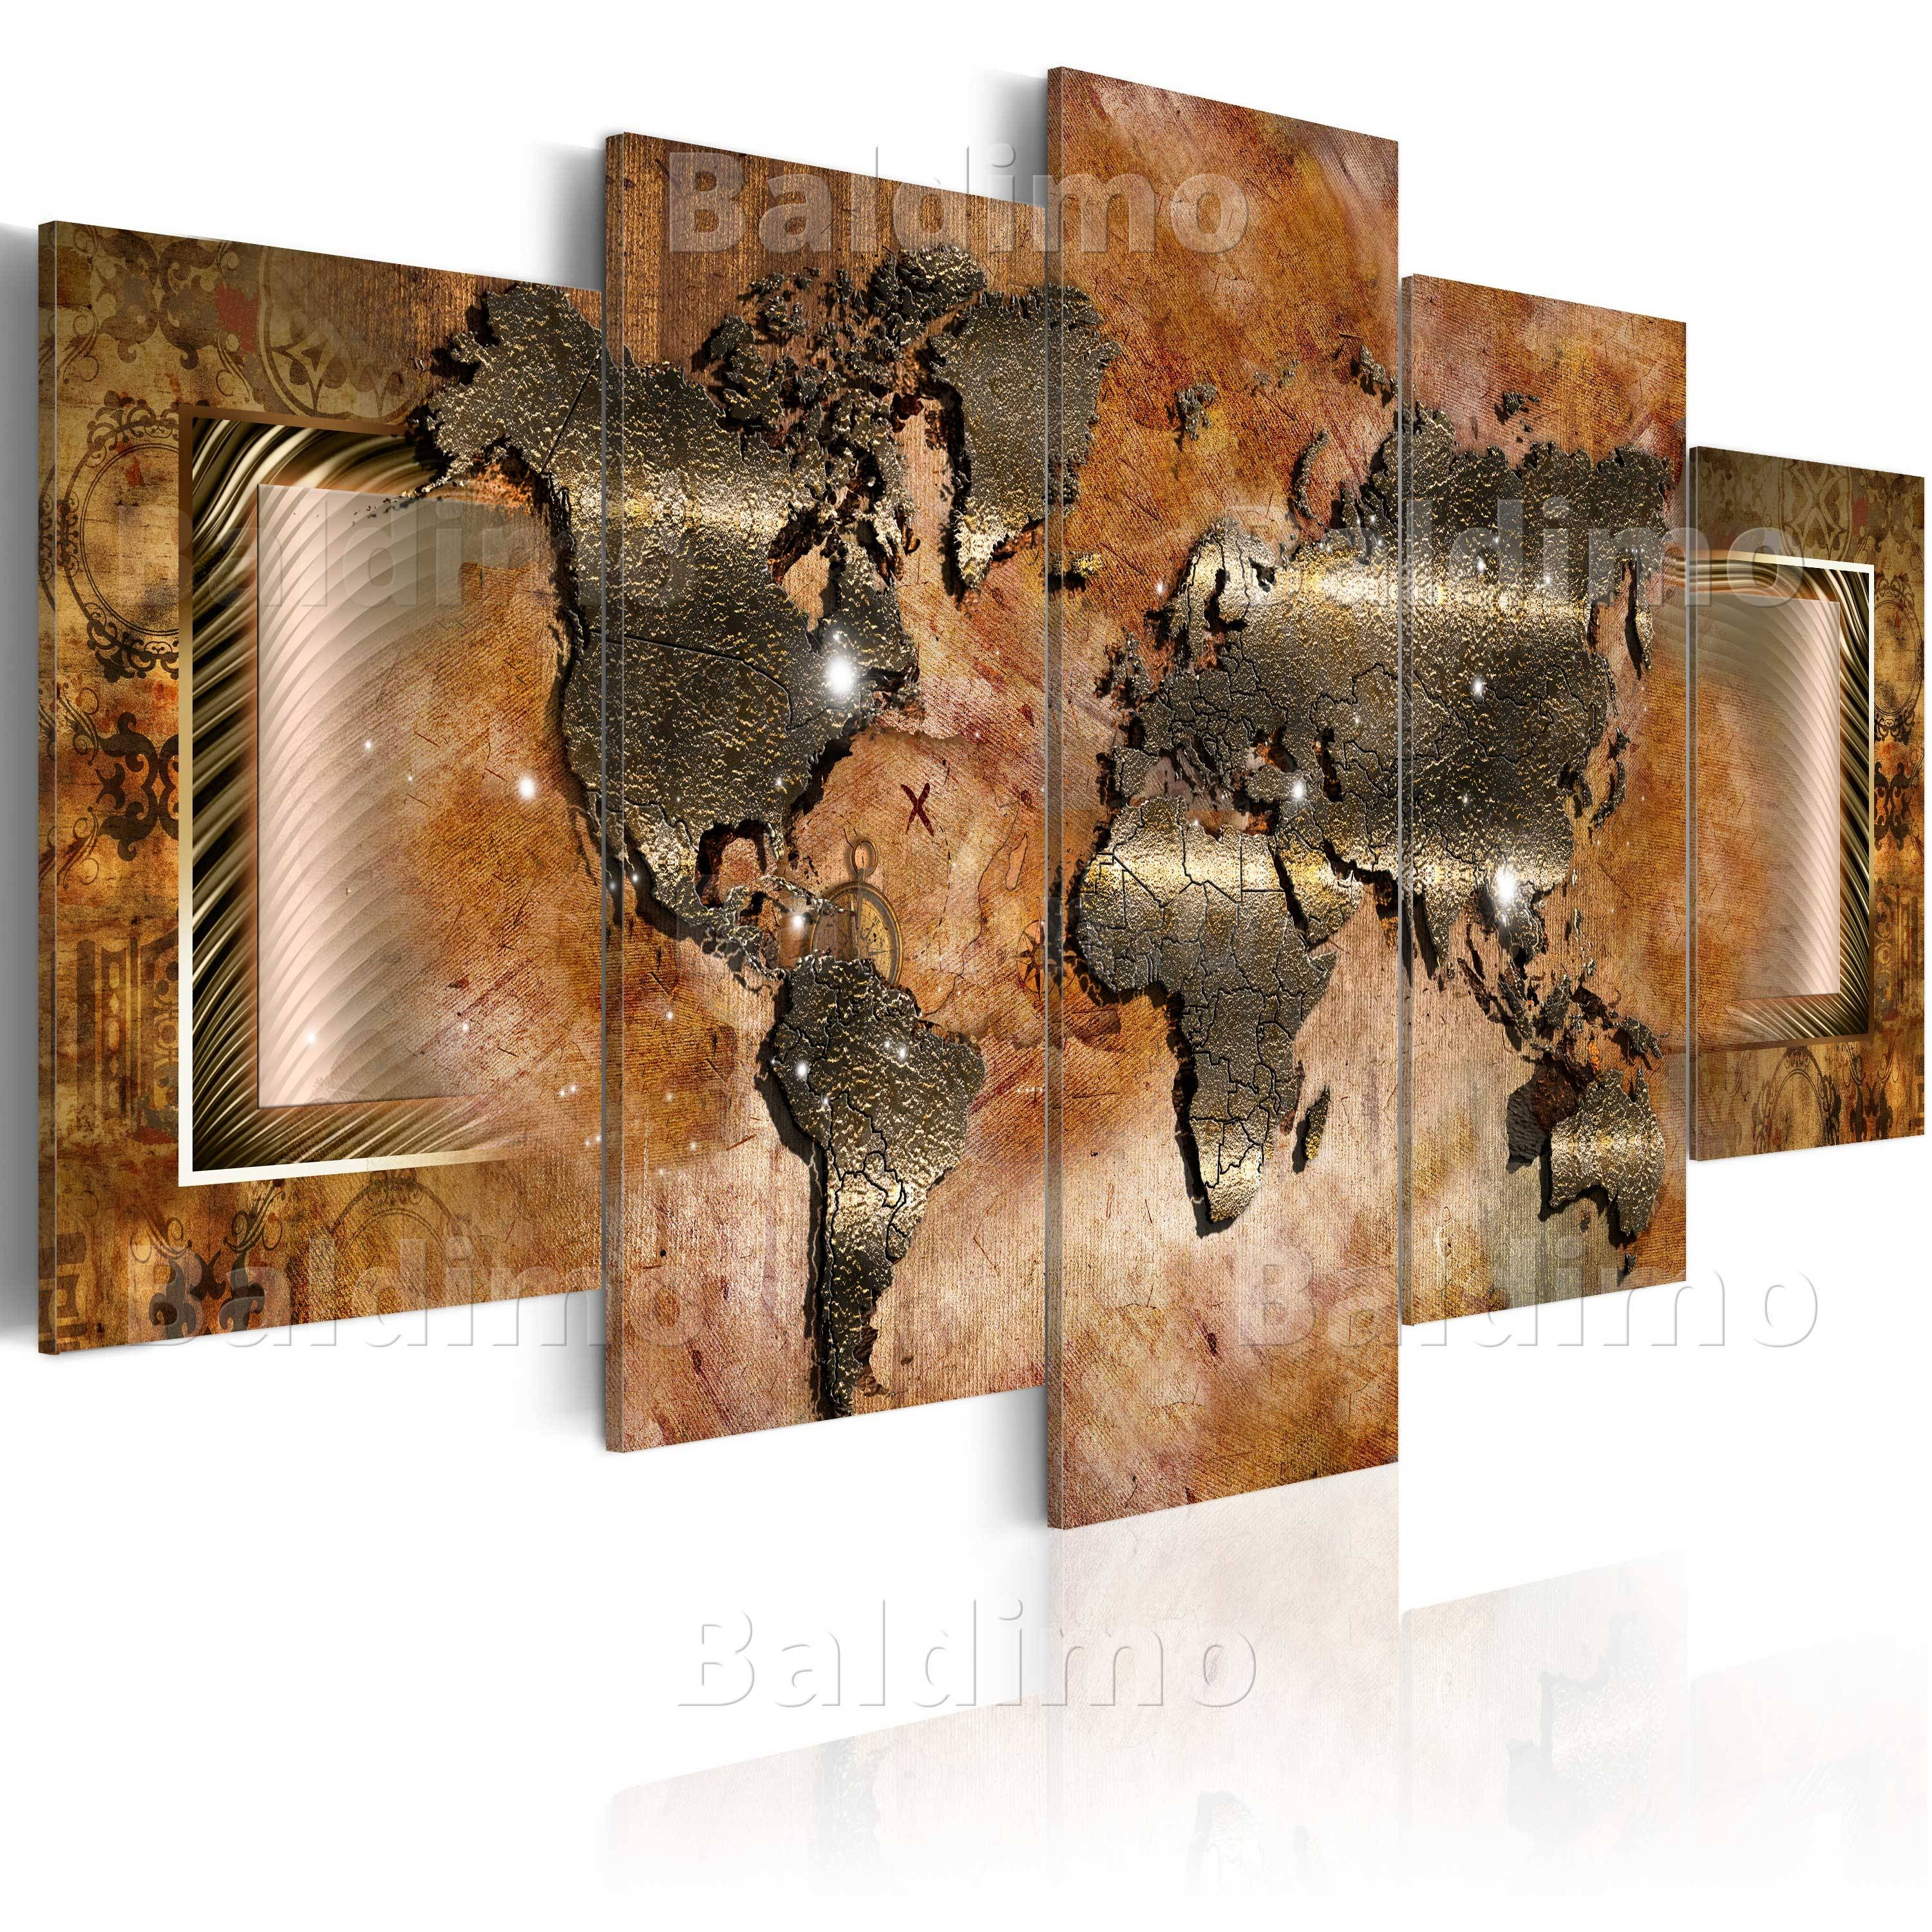 Large Canvas Wall Art Print + Image + Picture + Photo World Map For Most Recently Released Huge Wall Art Canvas (View 7 of 20)